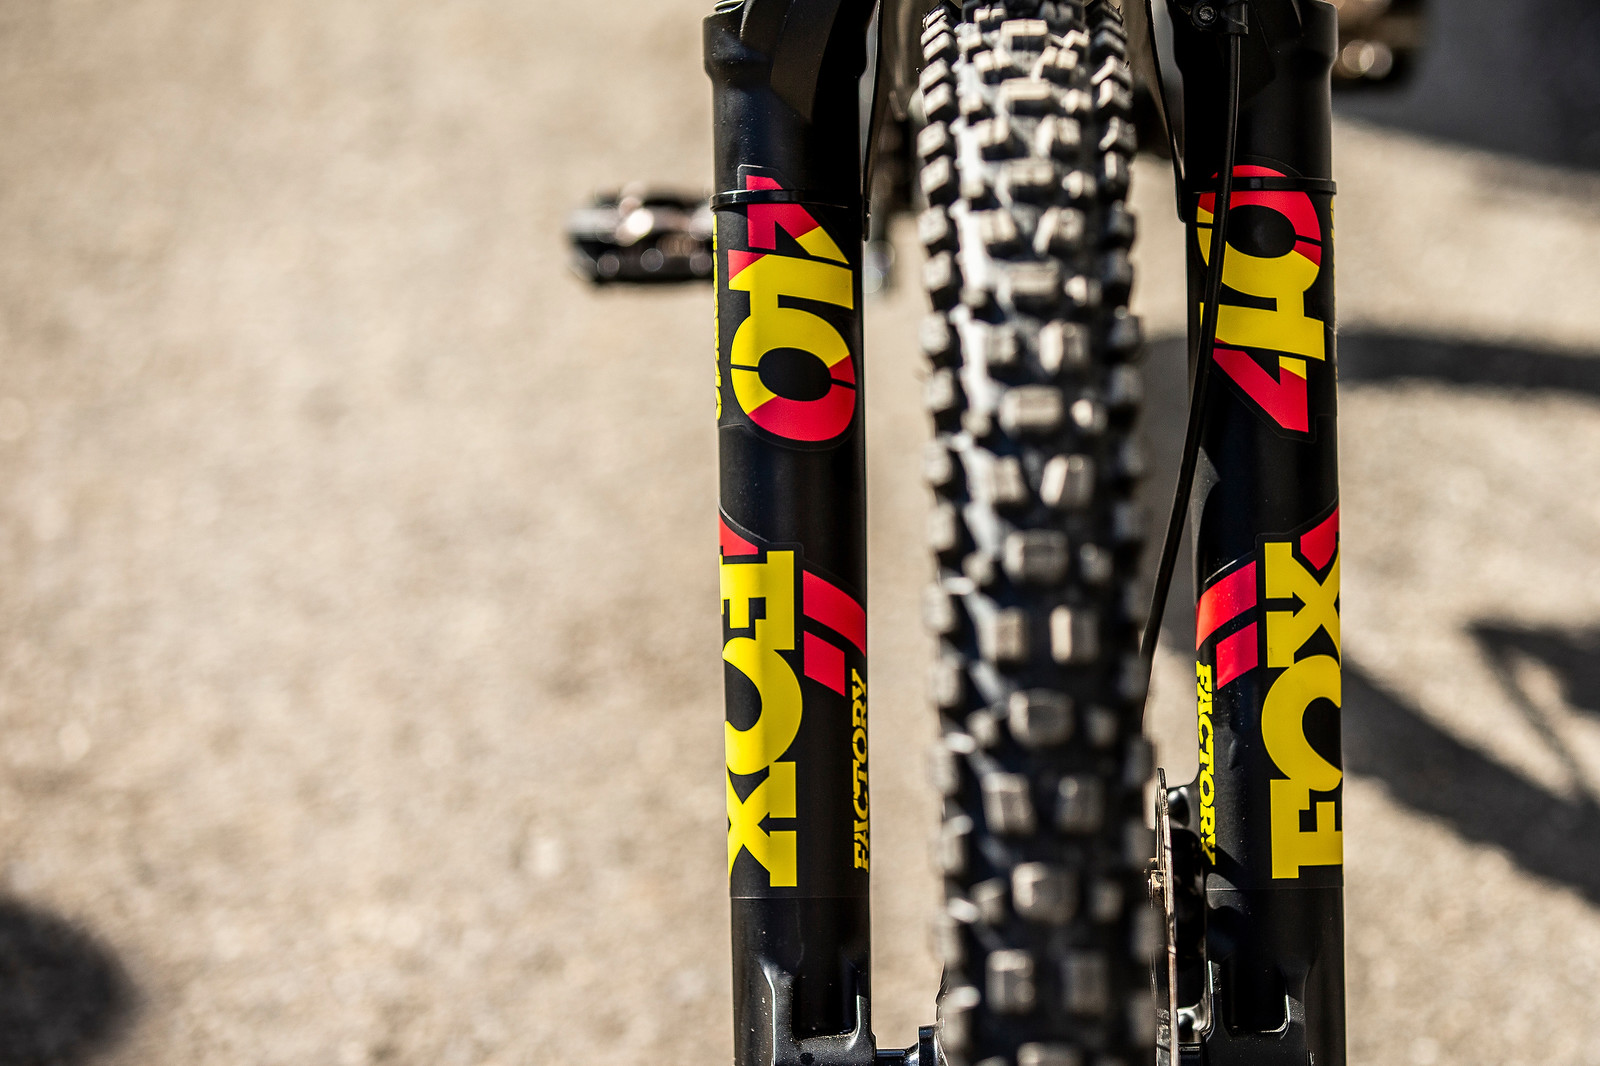 The Decals - WORLD CHAMPS BIKE - Alex Marin's Saracen Myst - Mountain Biking Pictures - Vital MTB